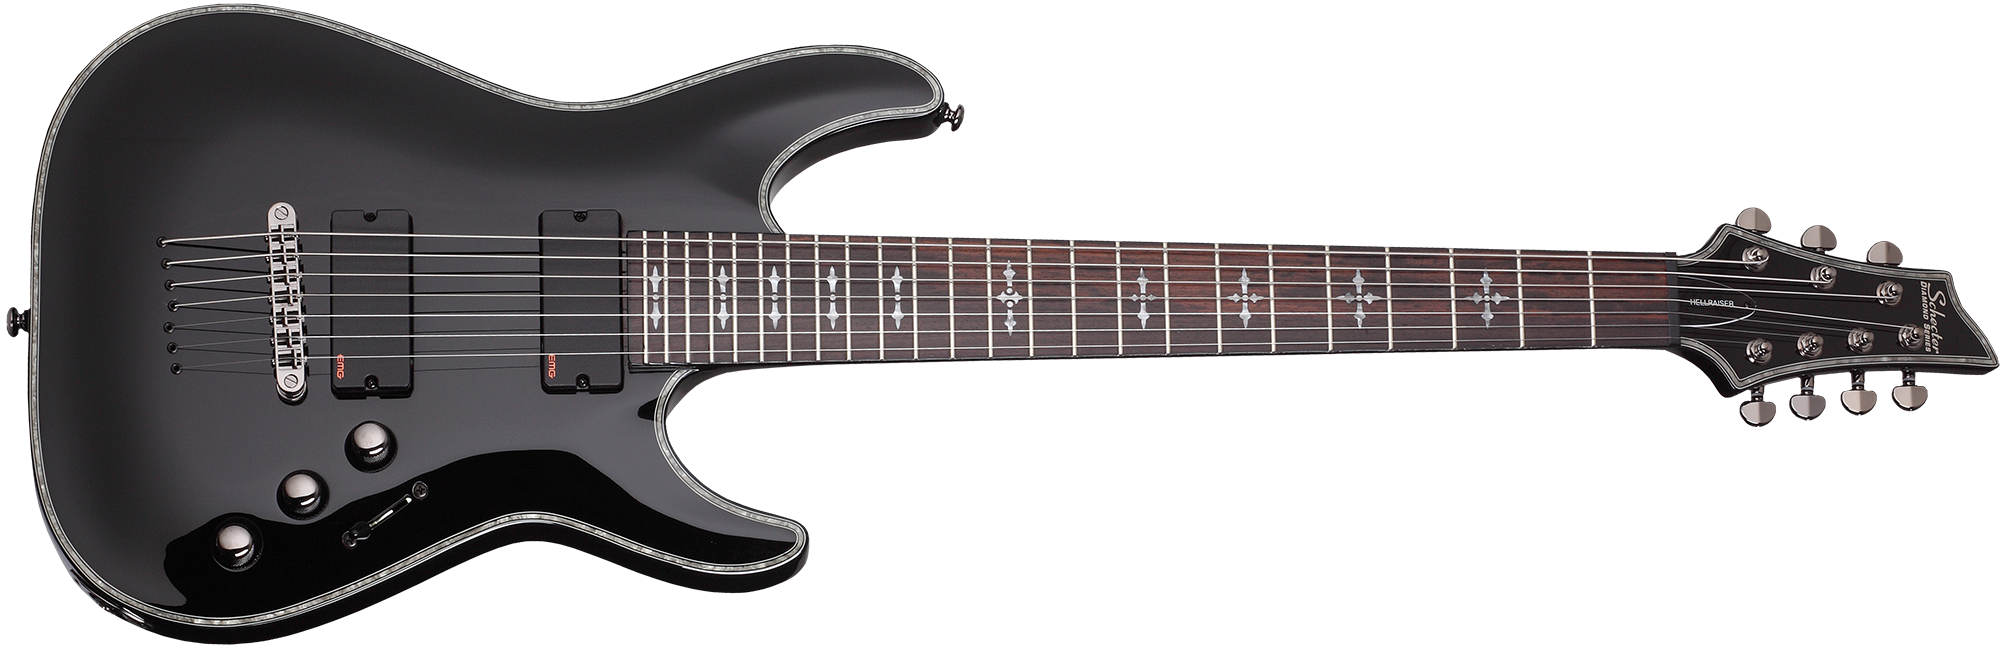 Hellraiser C-7 Gloss Black (BLK) SKU #1789